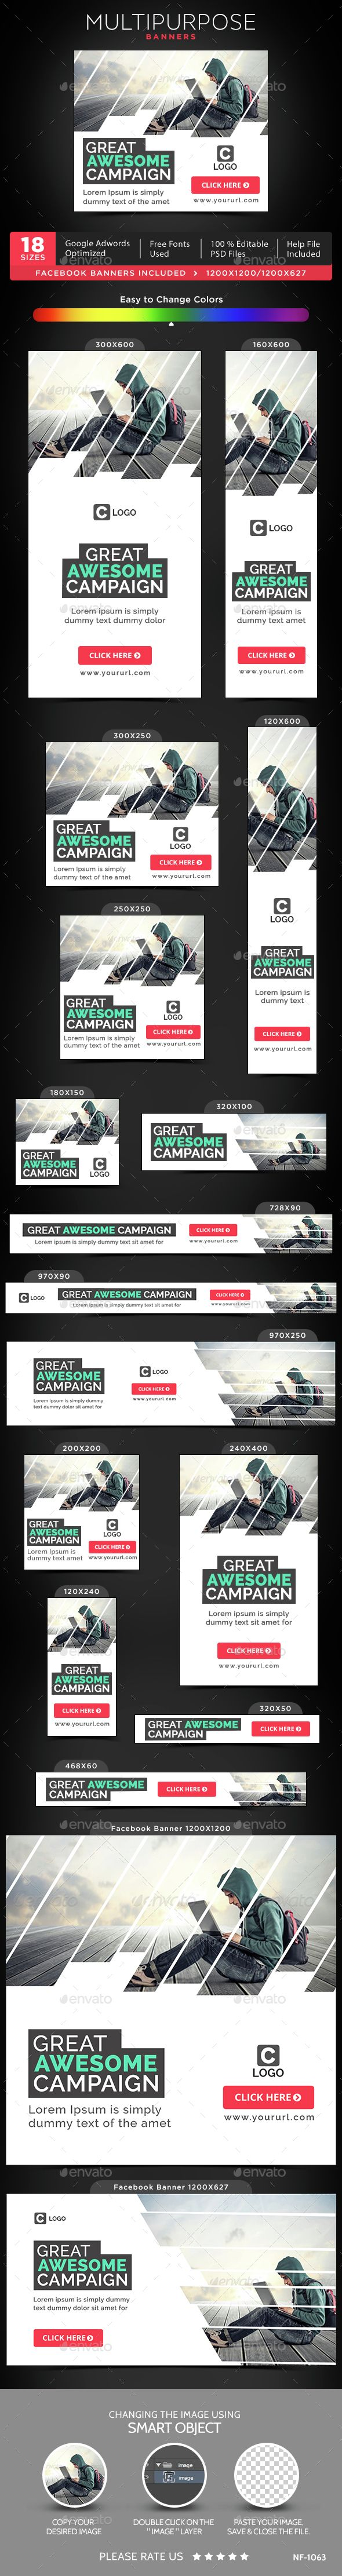 Multipurpose Web Banners Template PSD. Download here: http://graphicriver.net/item/multipurpose-banners/14843759?ref=ksioks